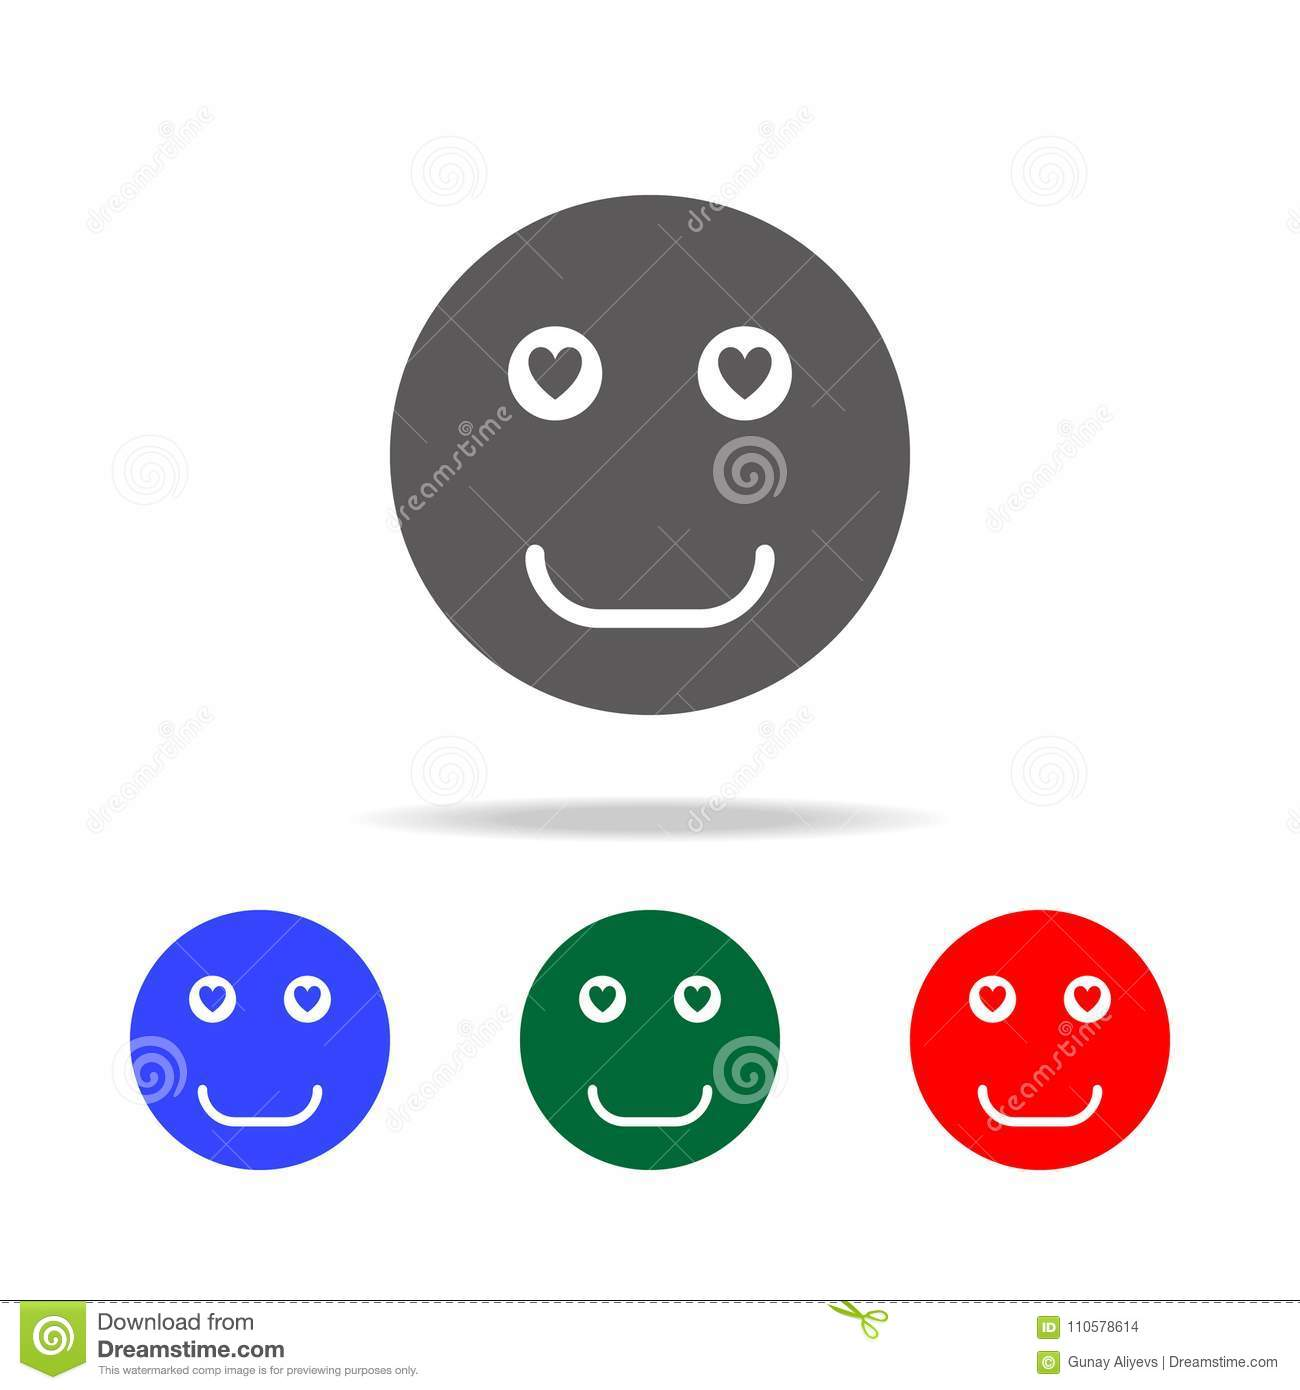 smiley face in love icon elements in multi colored icons for mobile